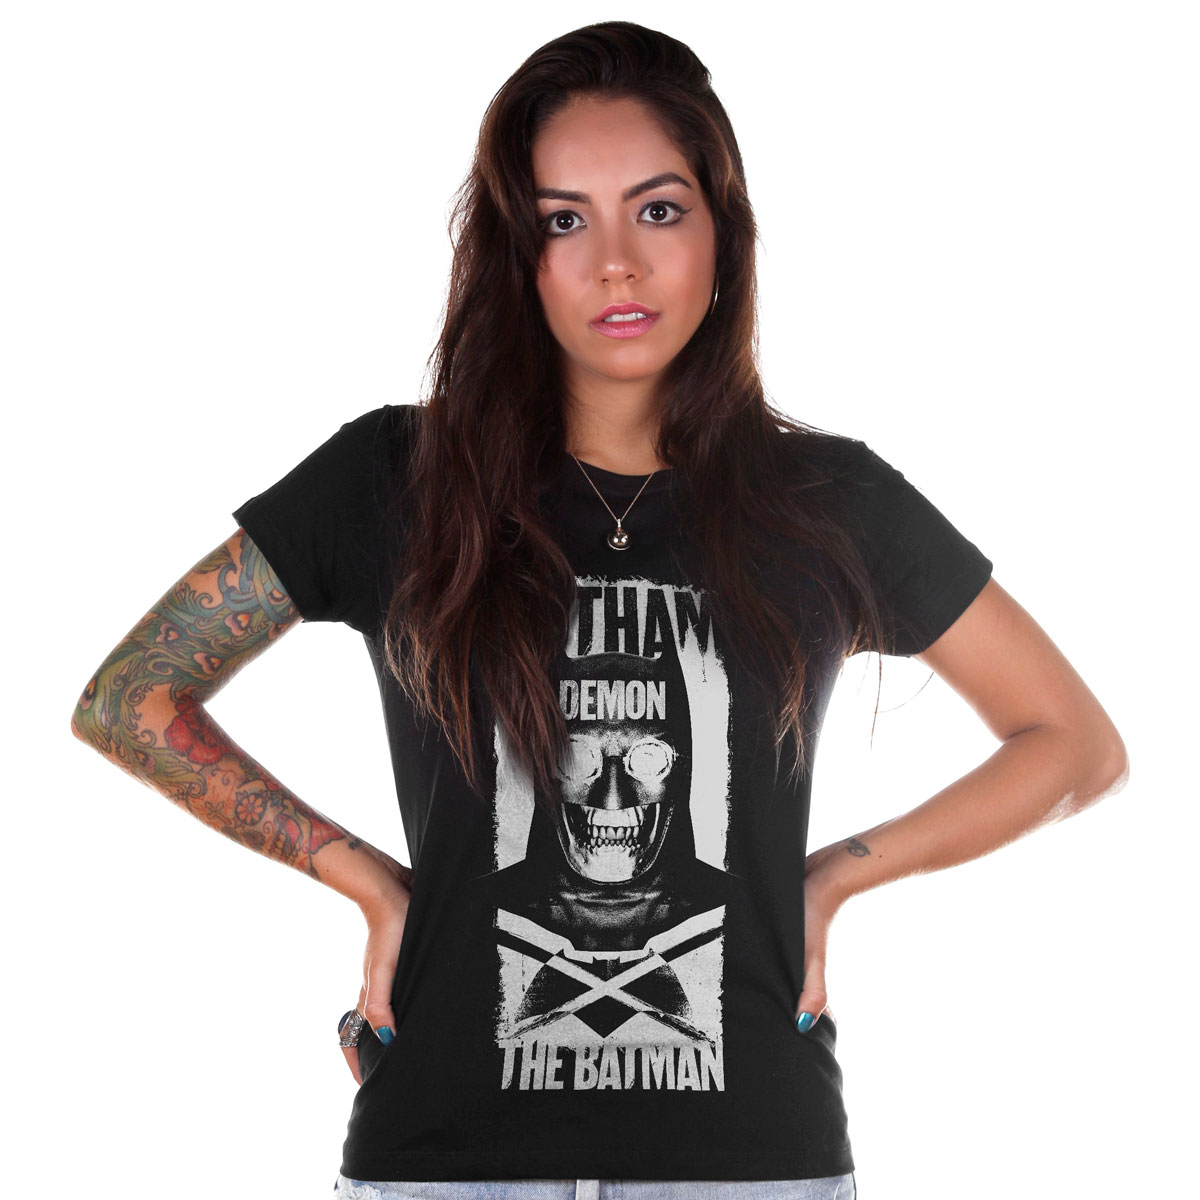 Camiseta Feminina Batman VS Superman Gotham Demon